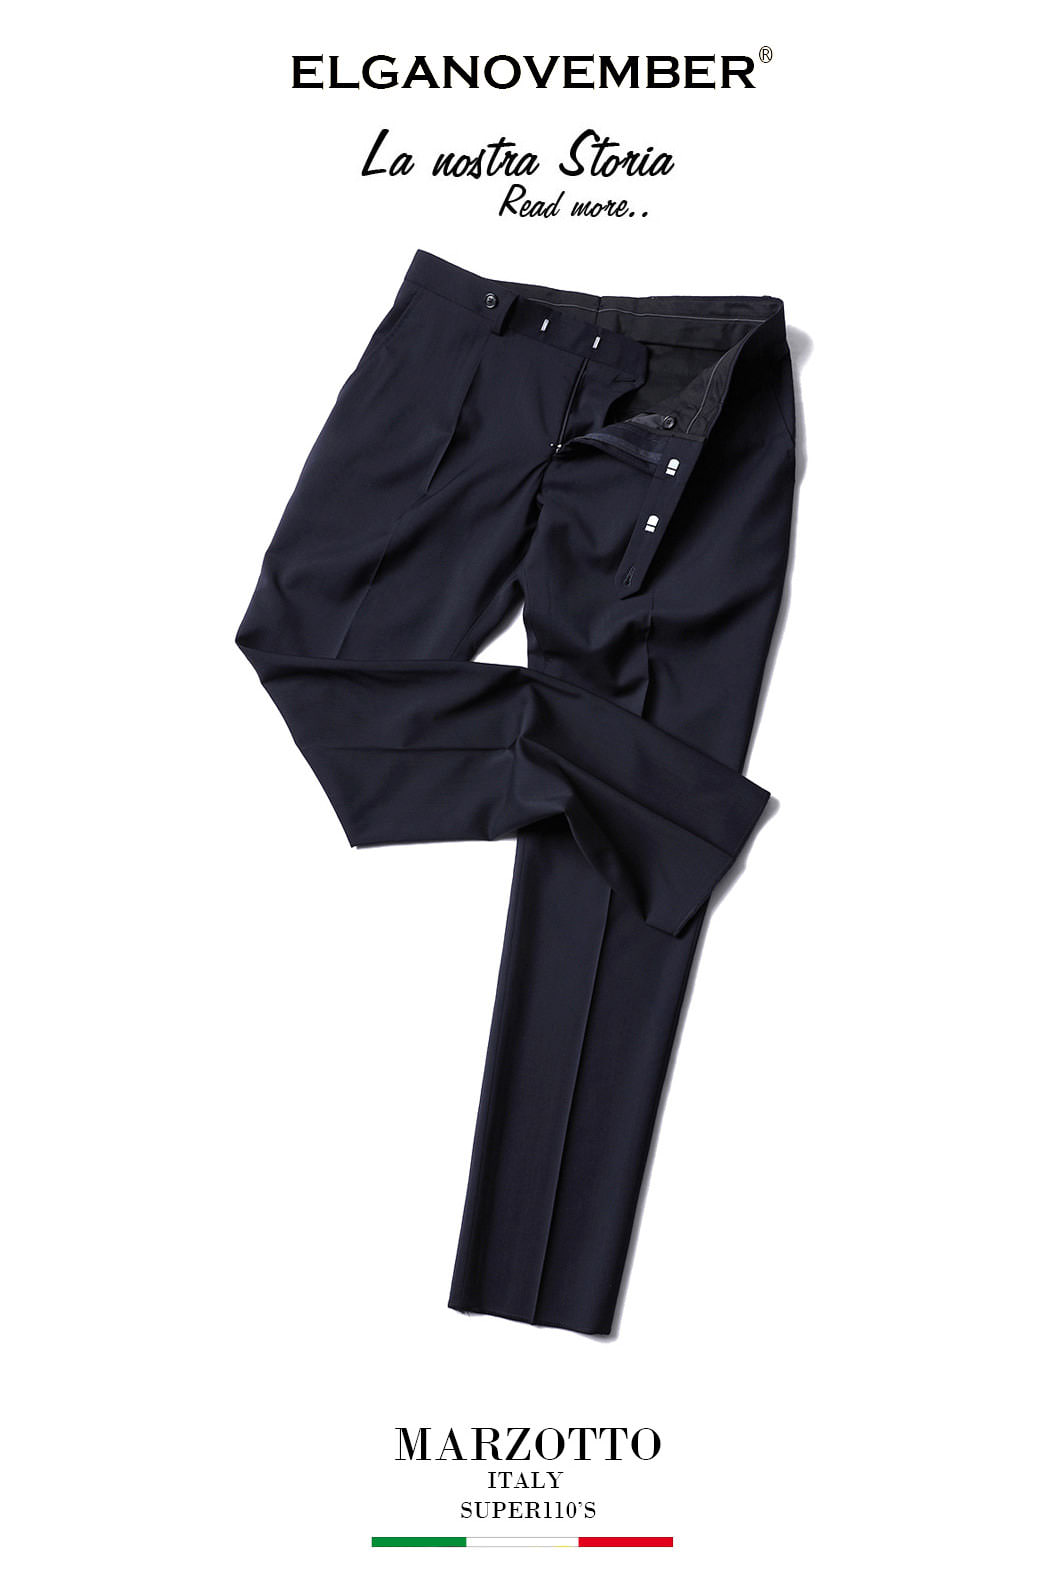 493 ITALY MARZOTTO VOLUME SLACKS PANTS-NAVY품절임박